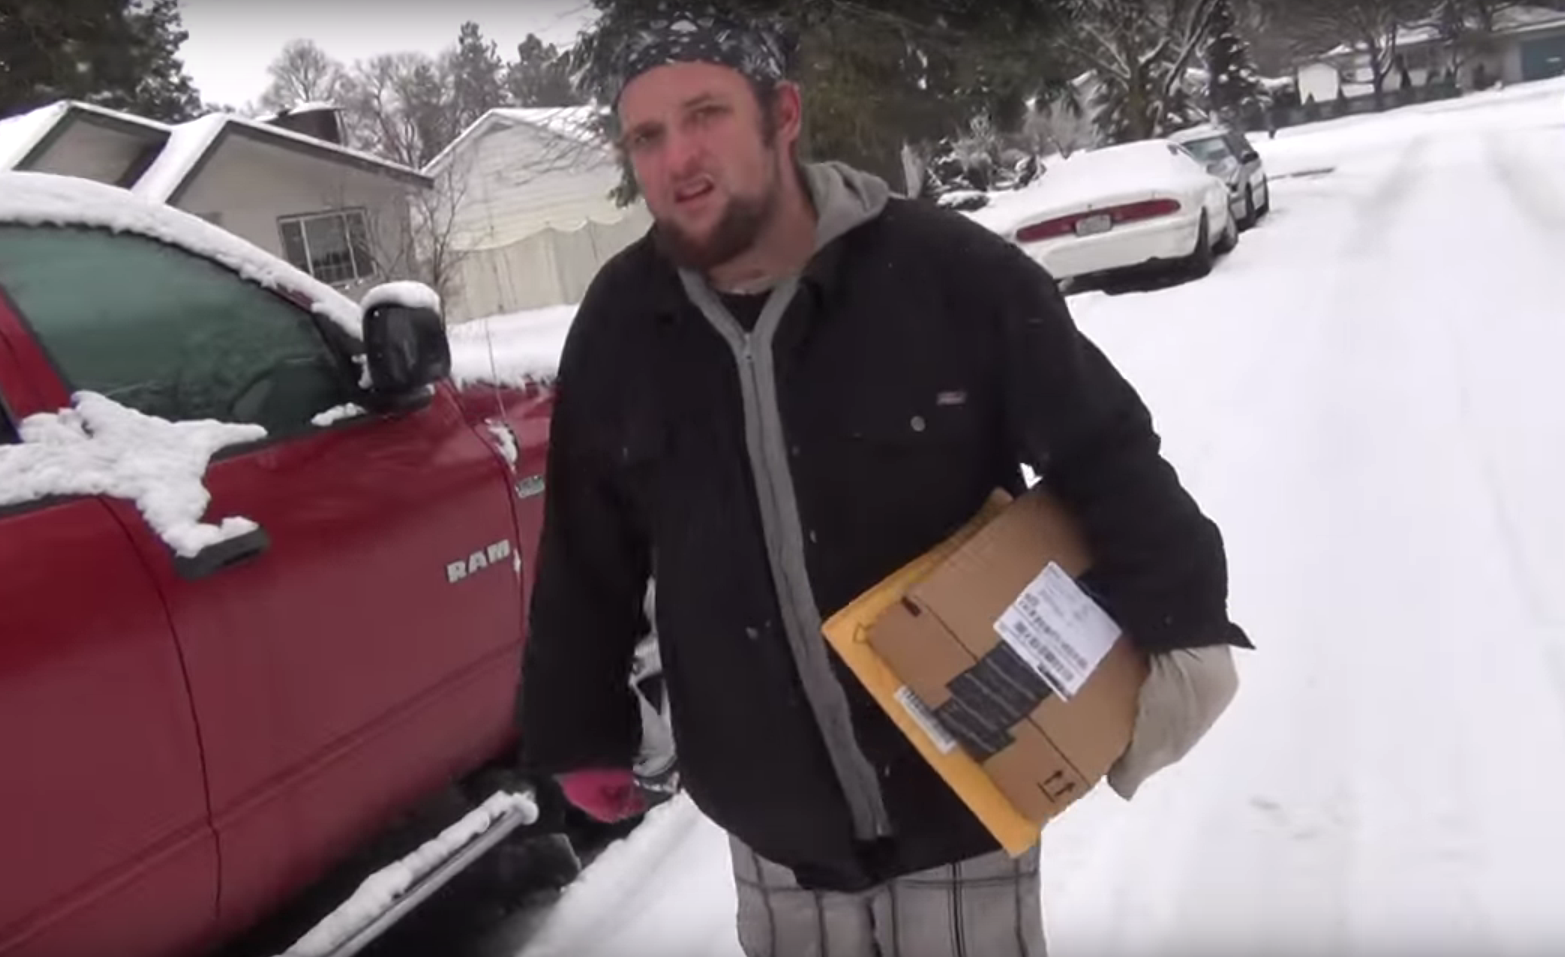 How to handle package thieves who steal Christmas presents from amazon